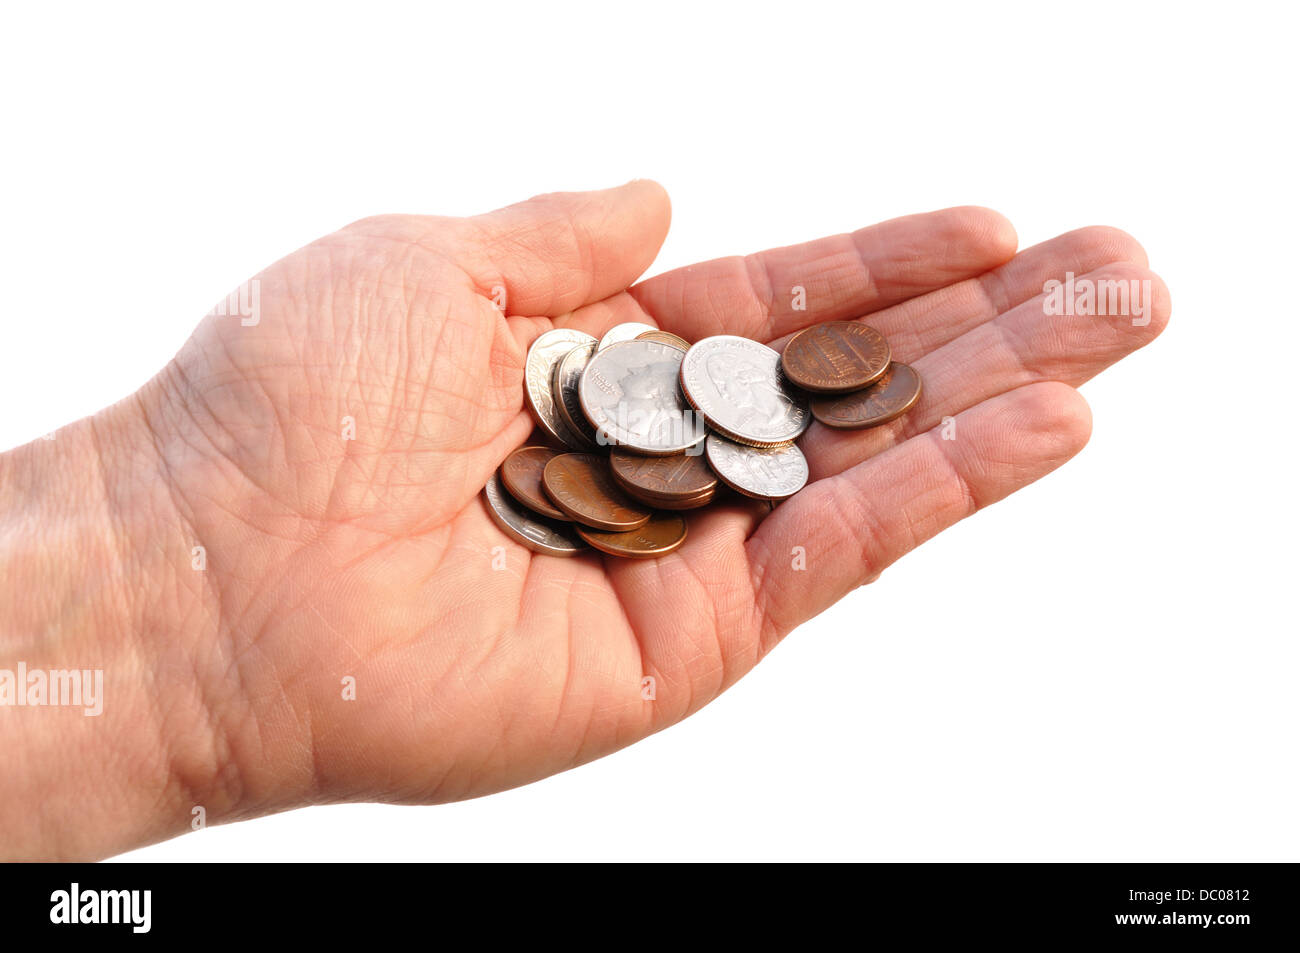 Hand holding out US currency small change - Stock Image